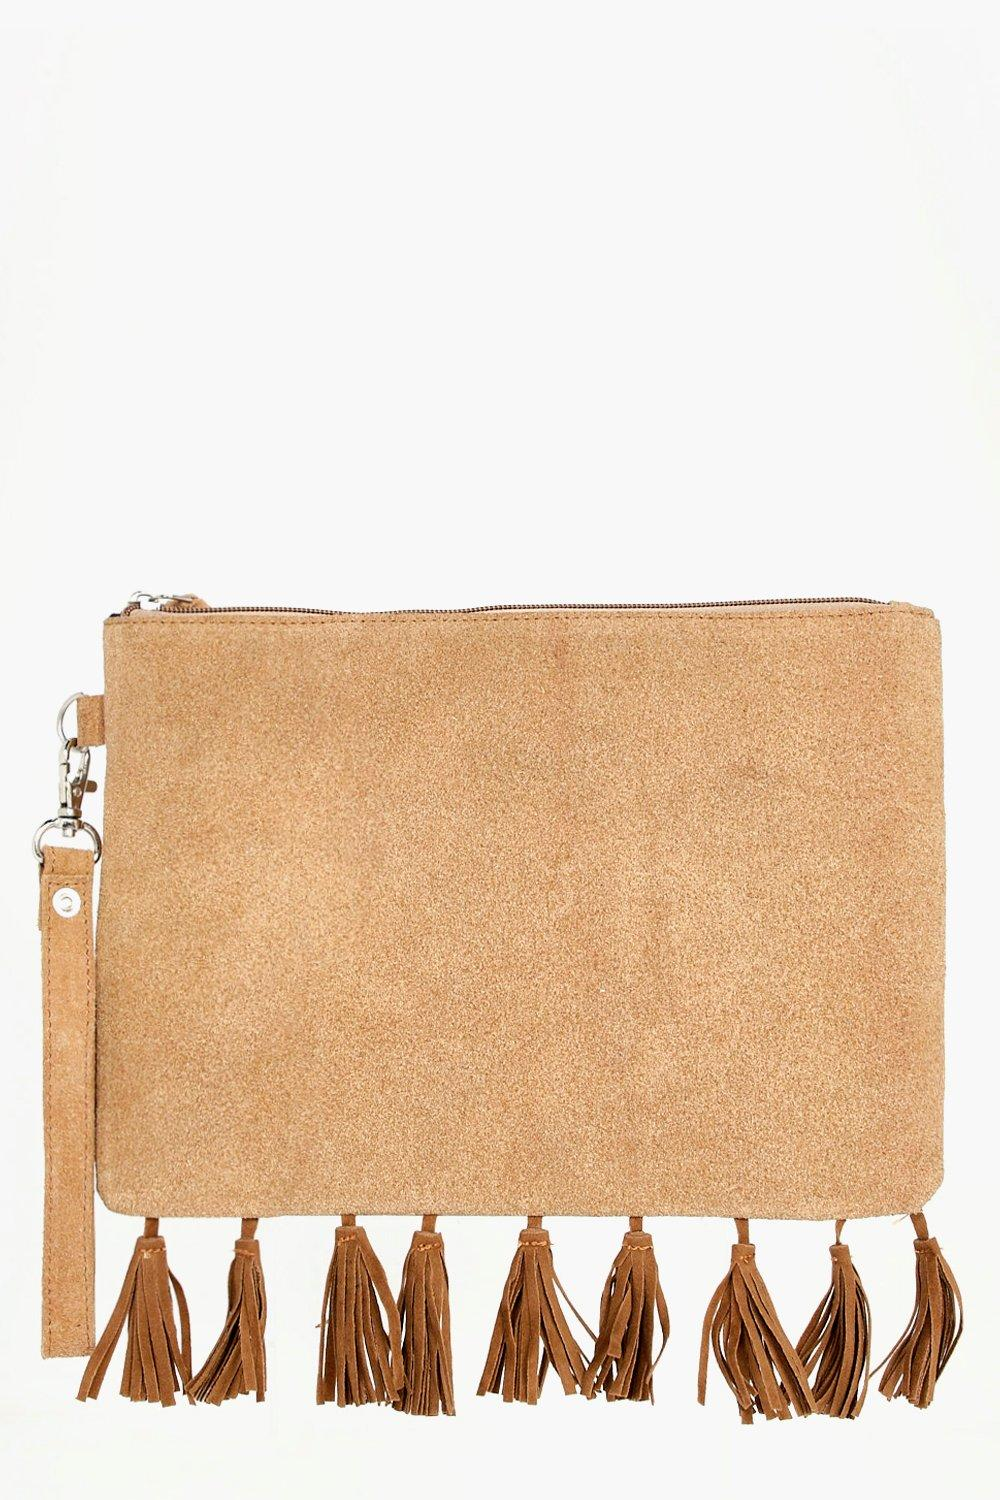 Boutique Suede Fringed Cross Body Bag - tan - Eva